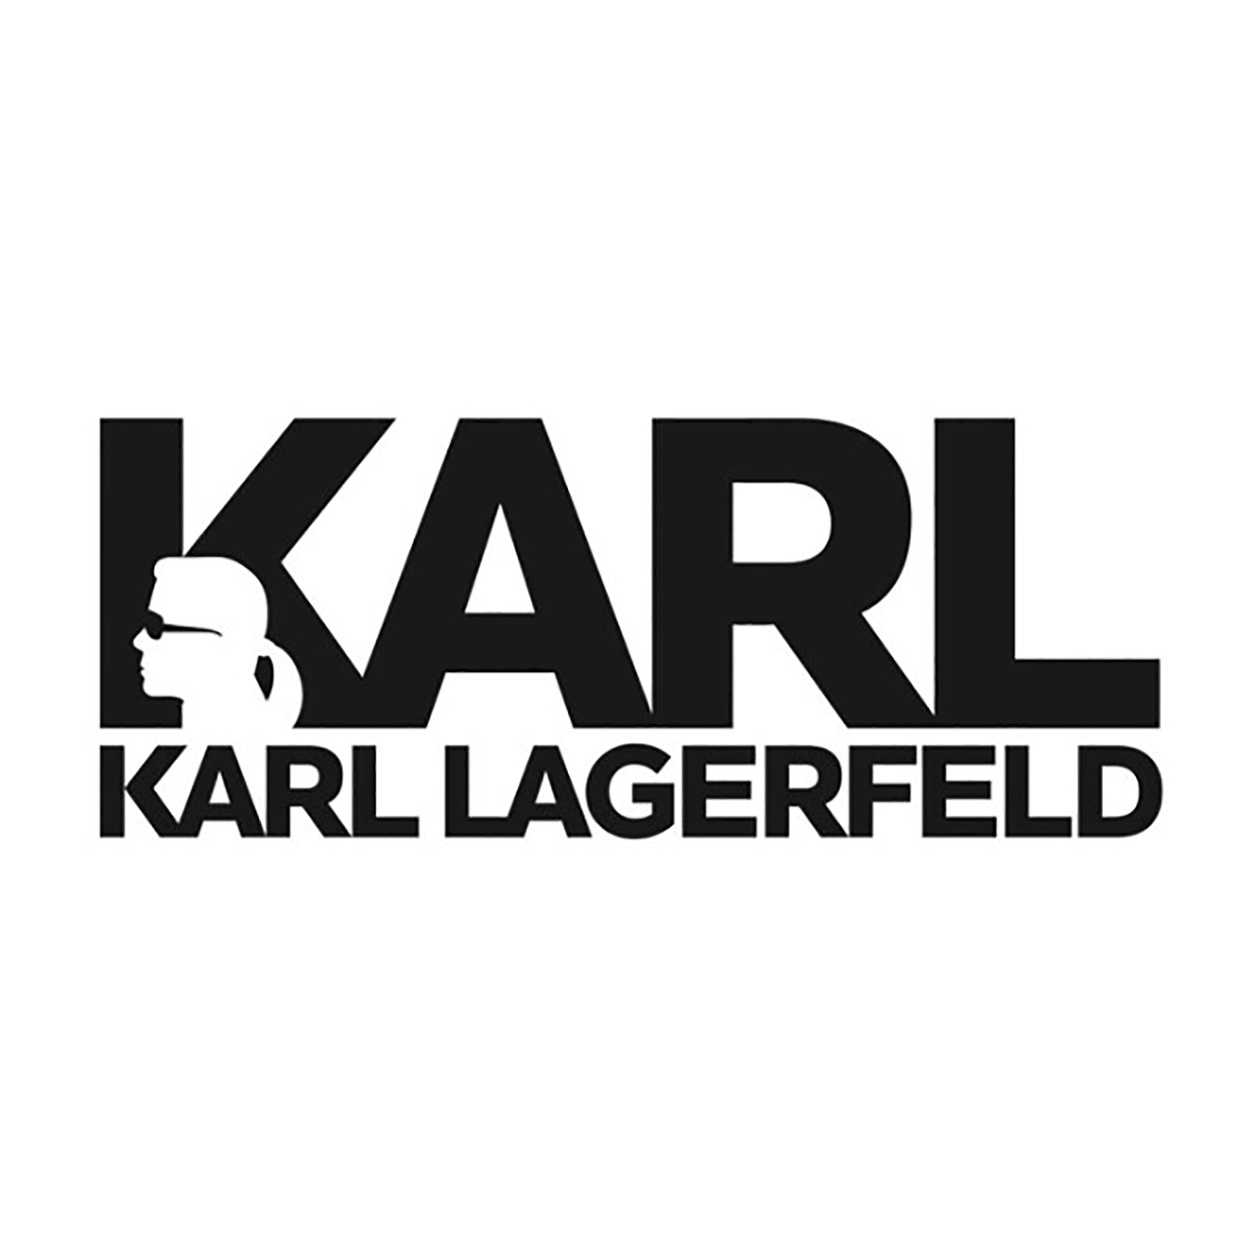 Karl Lagerfeld - temporary showroom